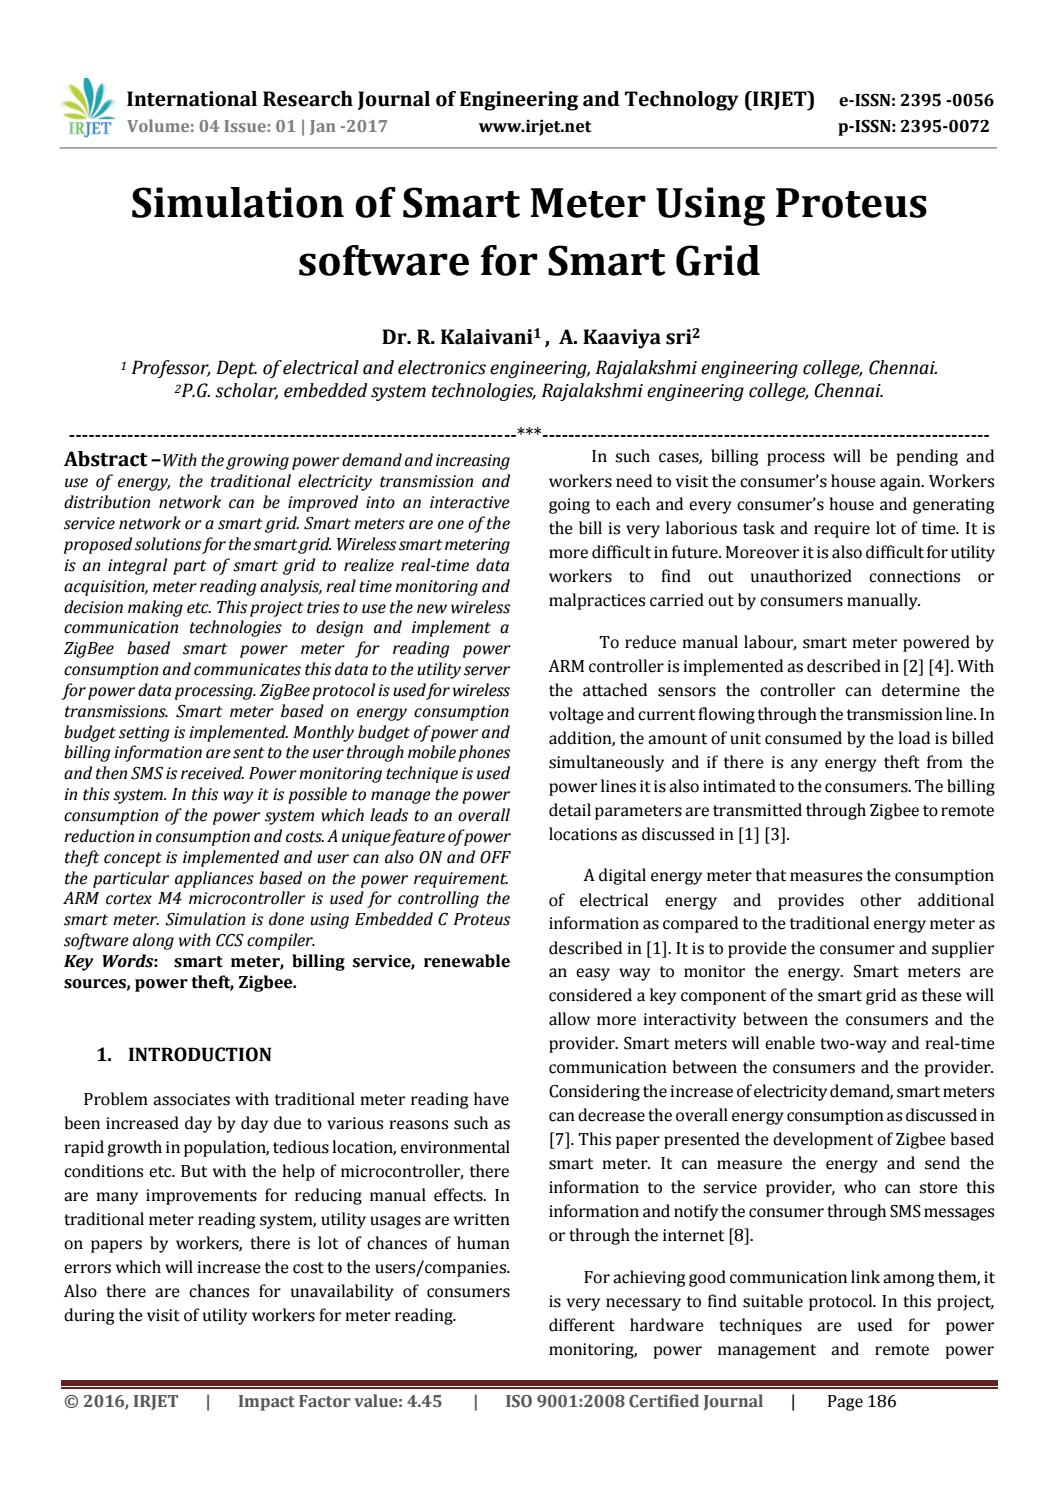 Simulation Of Smart Meter Using Proteus Software For Grid By Circuit Free Irjet Journal Issuu